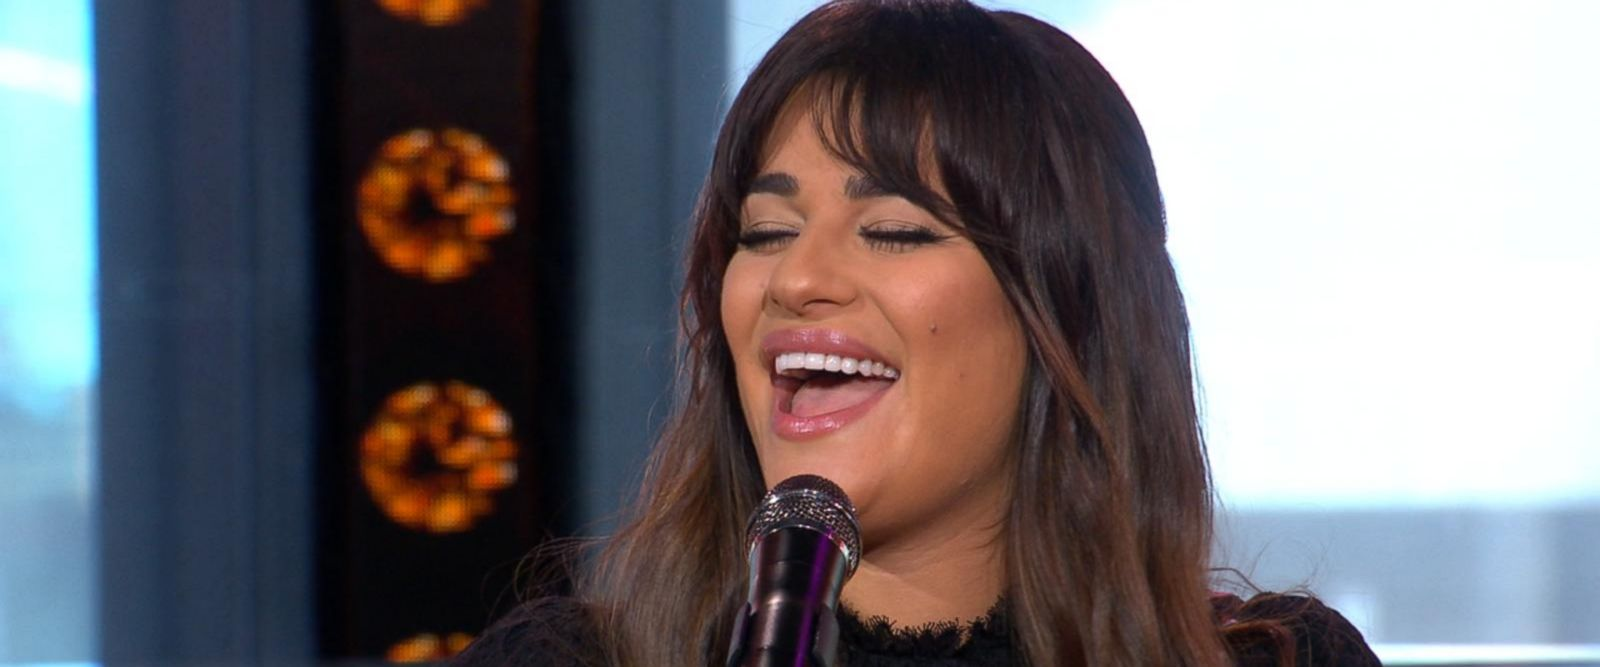 VIDEO: Lea Michele performs 'Anything's Possible' live on 'GMA'